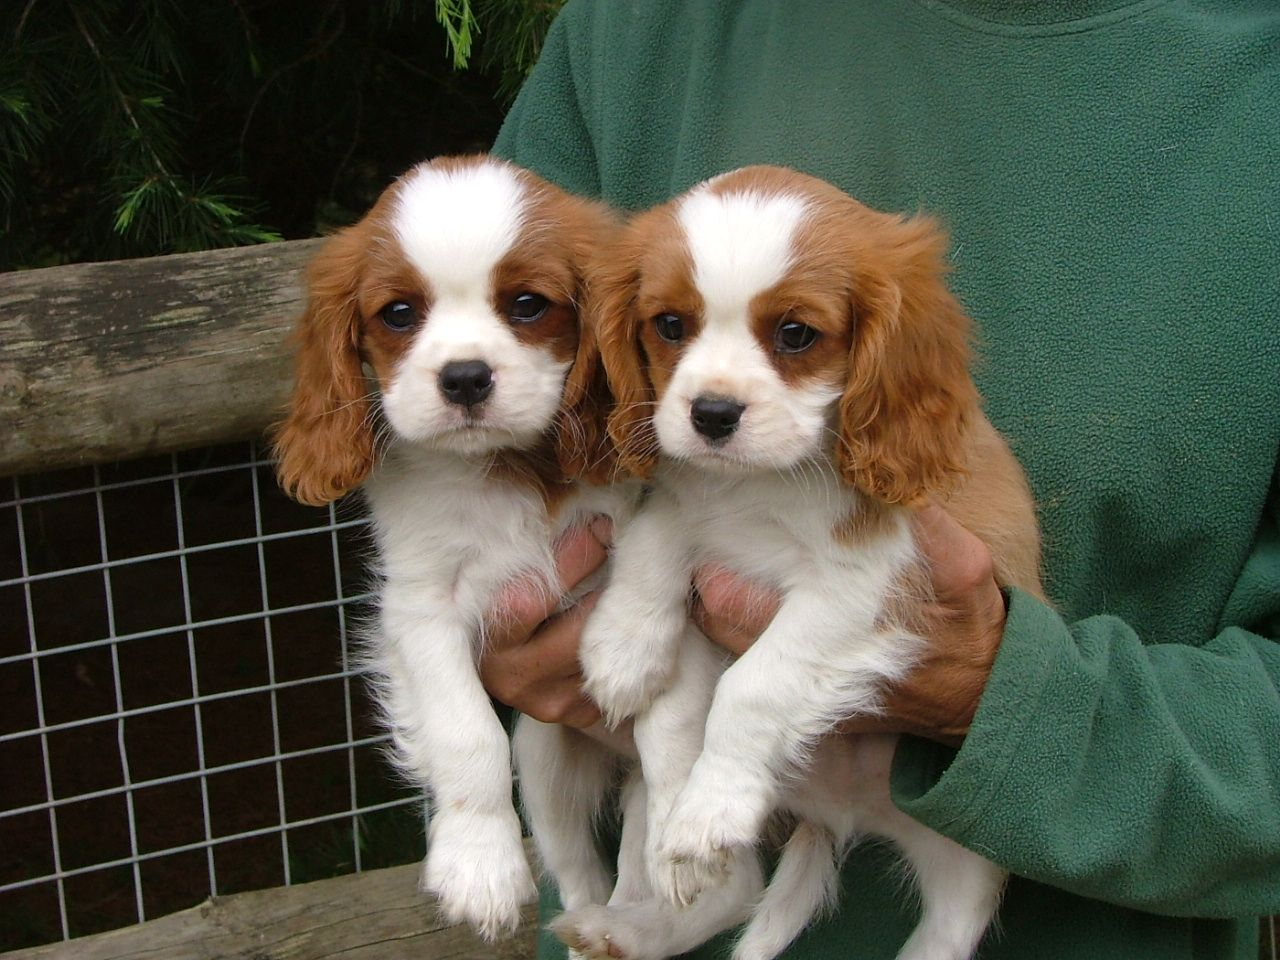 Buy/Sell King Charles spaniel Puppies - Adopt Puppy Online In India